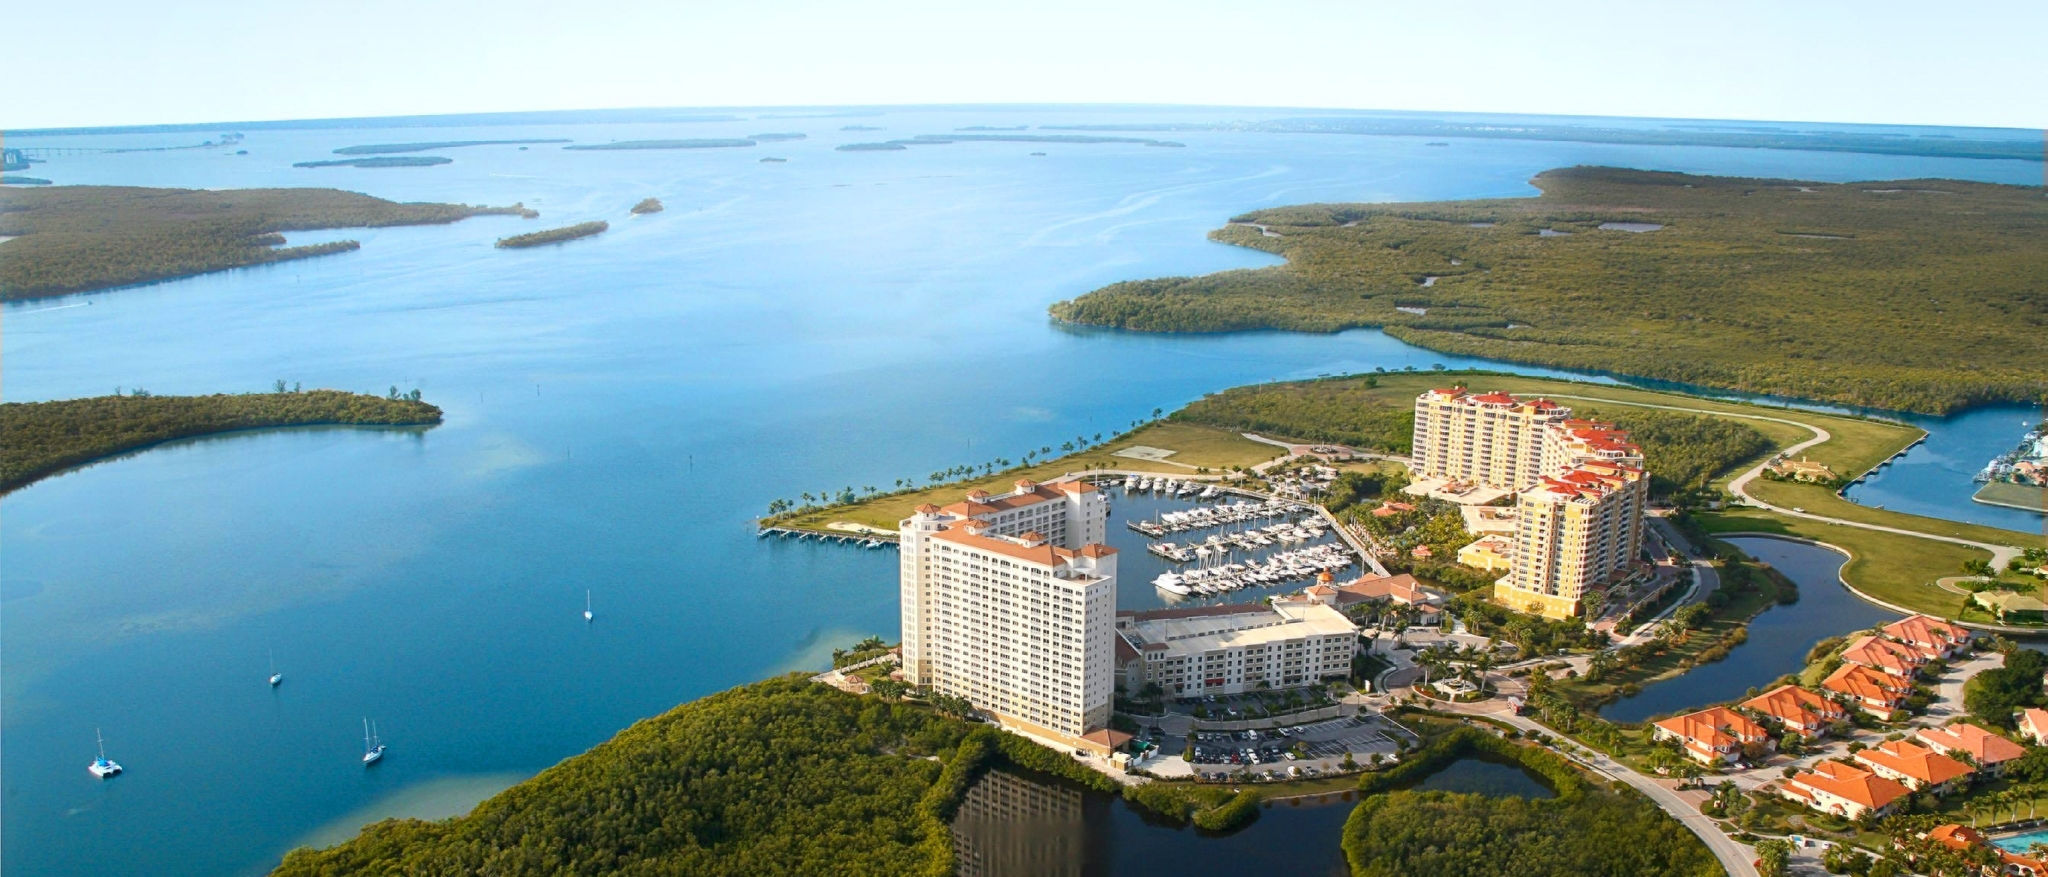 The Westin Cape Coral Resort at Marina Village - Aerial